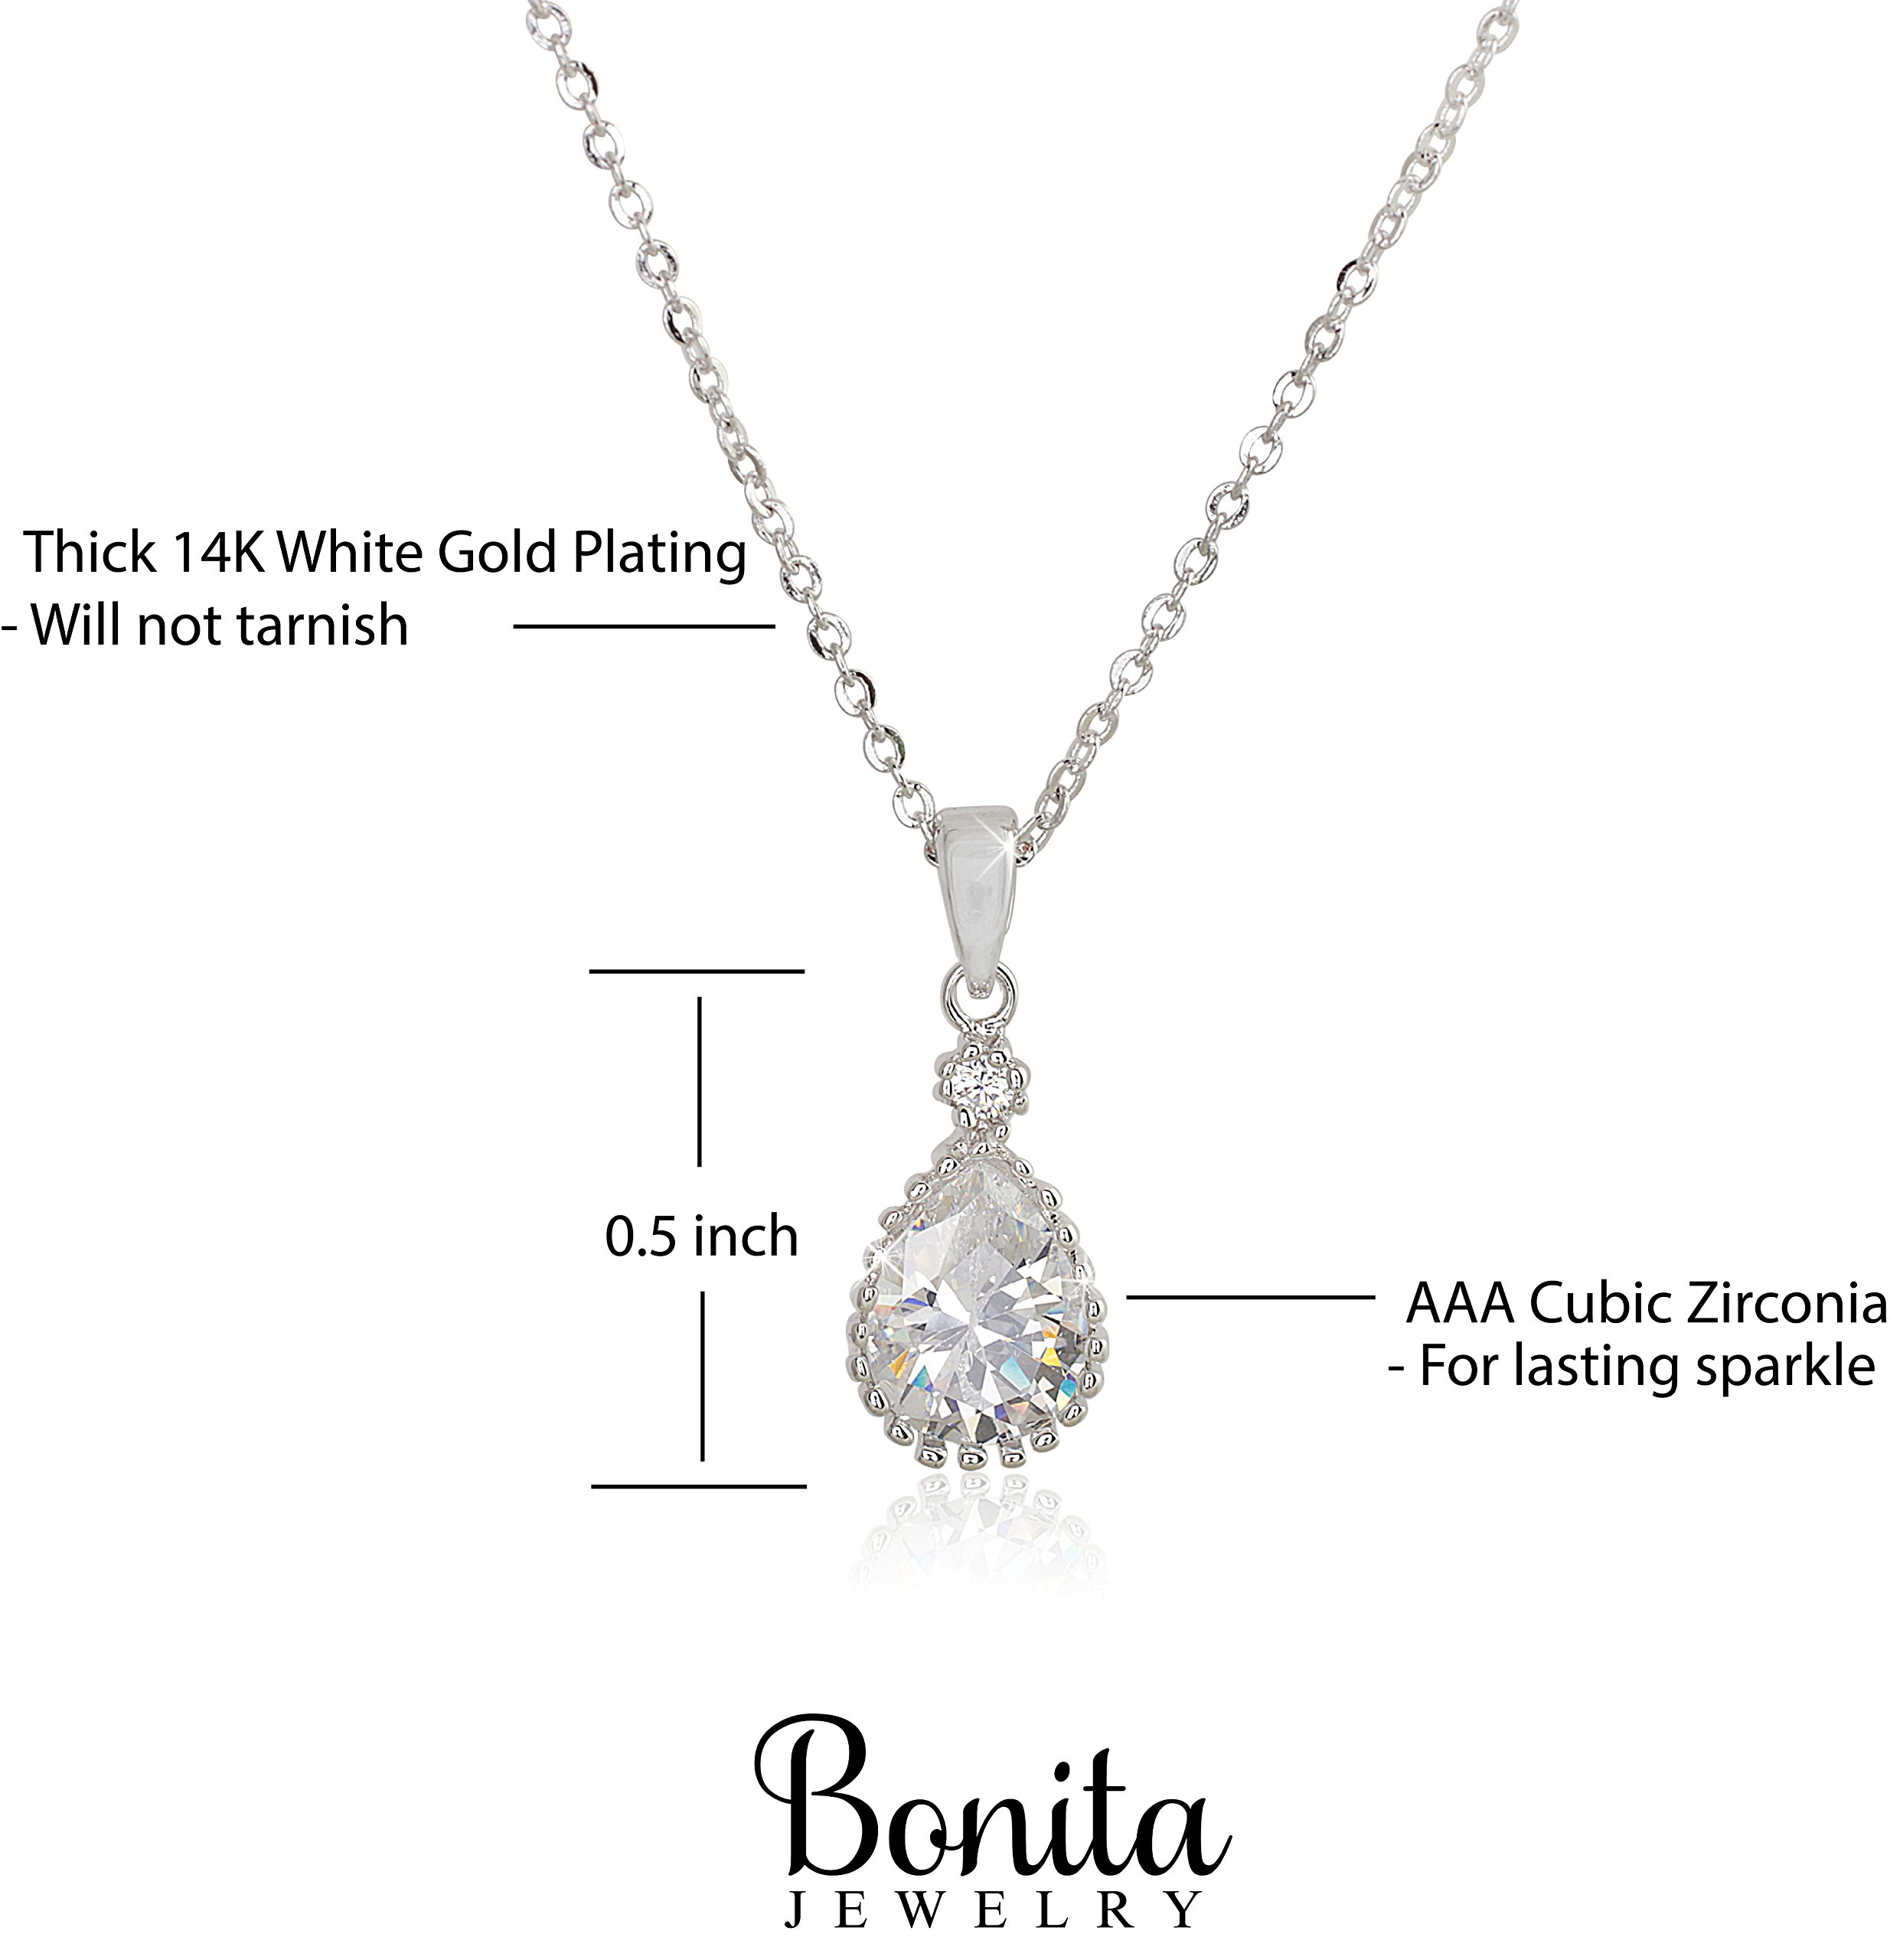 Teardrop Cubic Zirconia Necklace Pendant - A Pretty Necklace That Sparkles Like a Diamond For Women and Girls